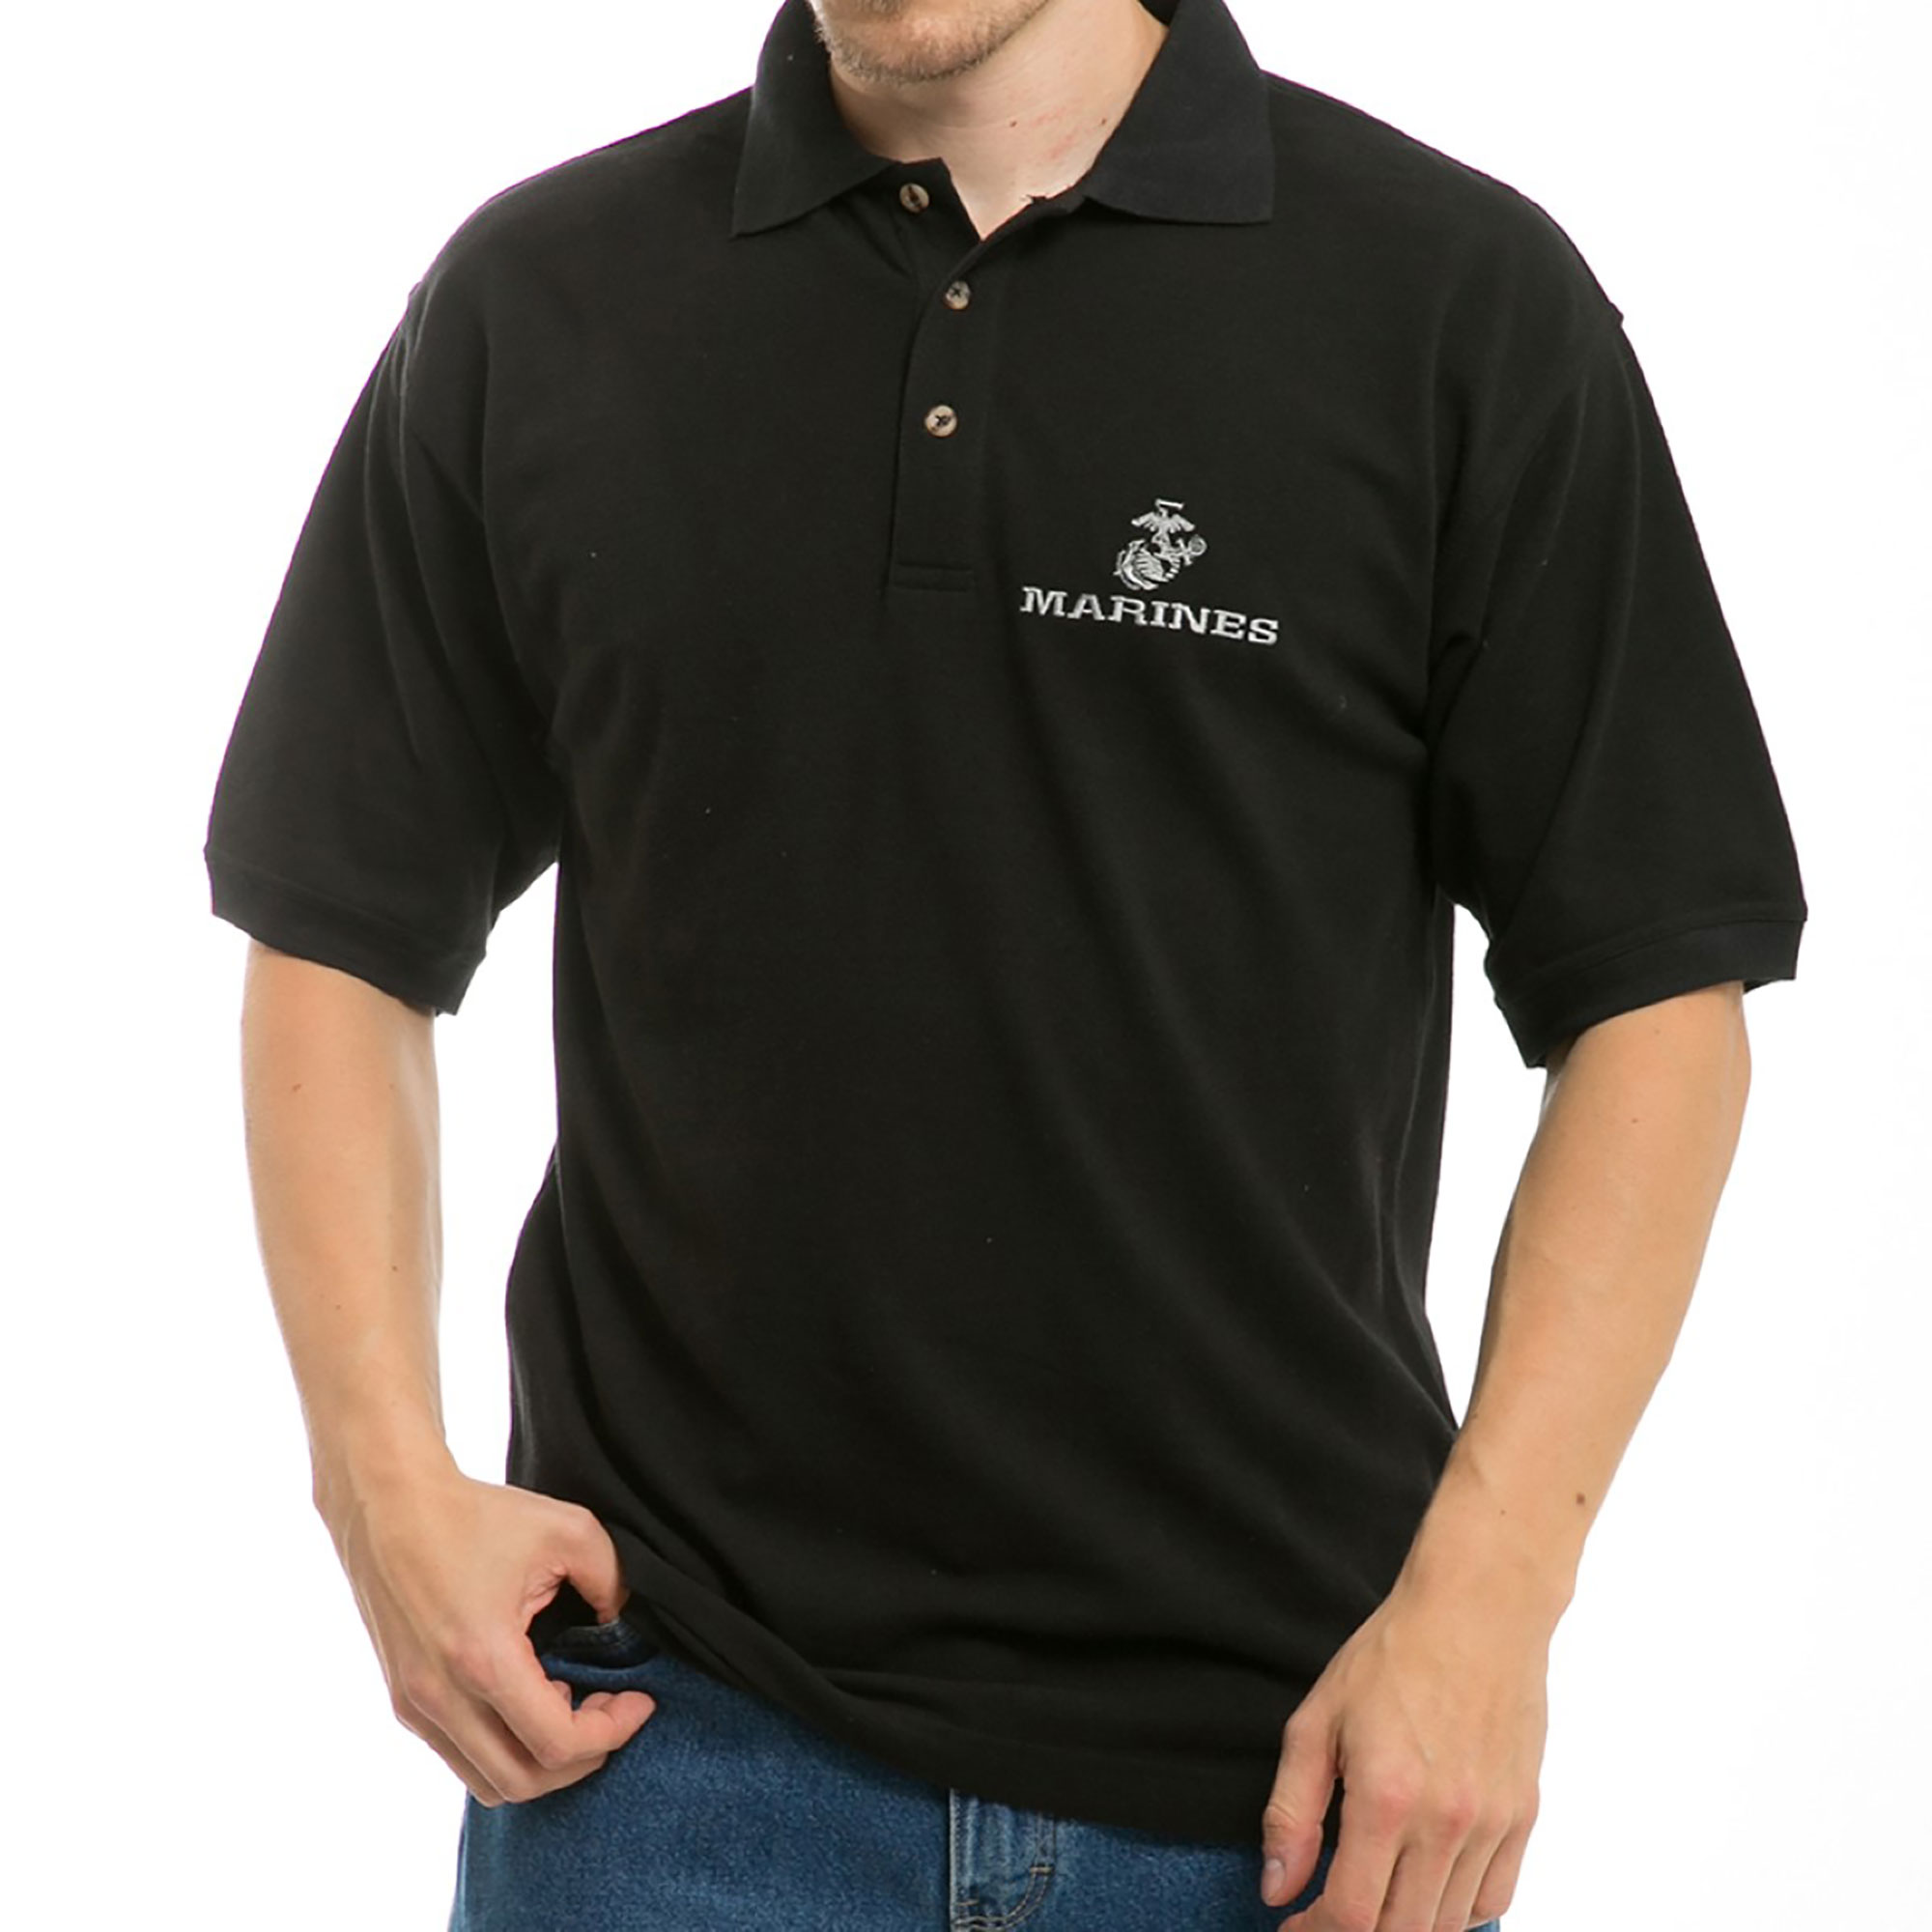 Rapid Dominance Embroidered Military Chest Sleeves Polo Shirt Marines, Style S31